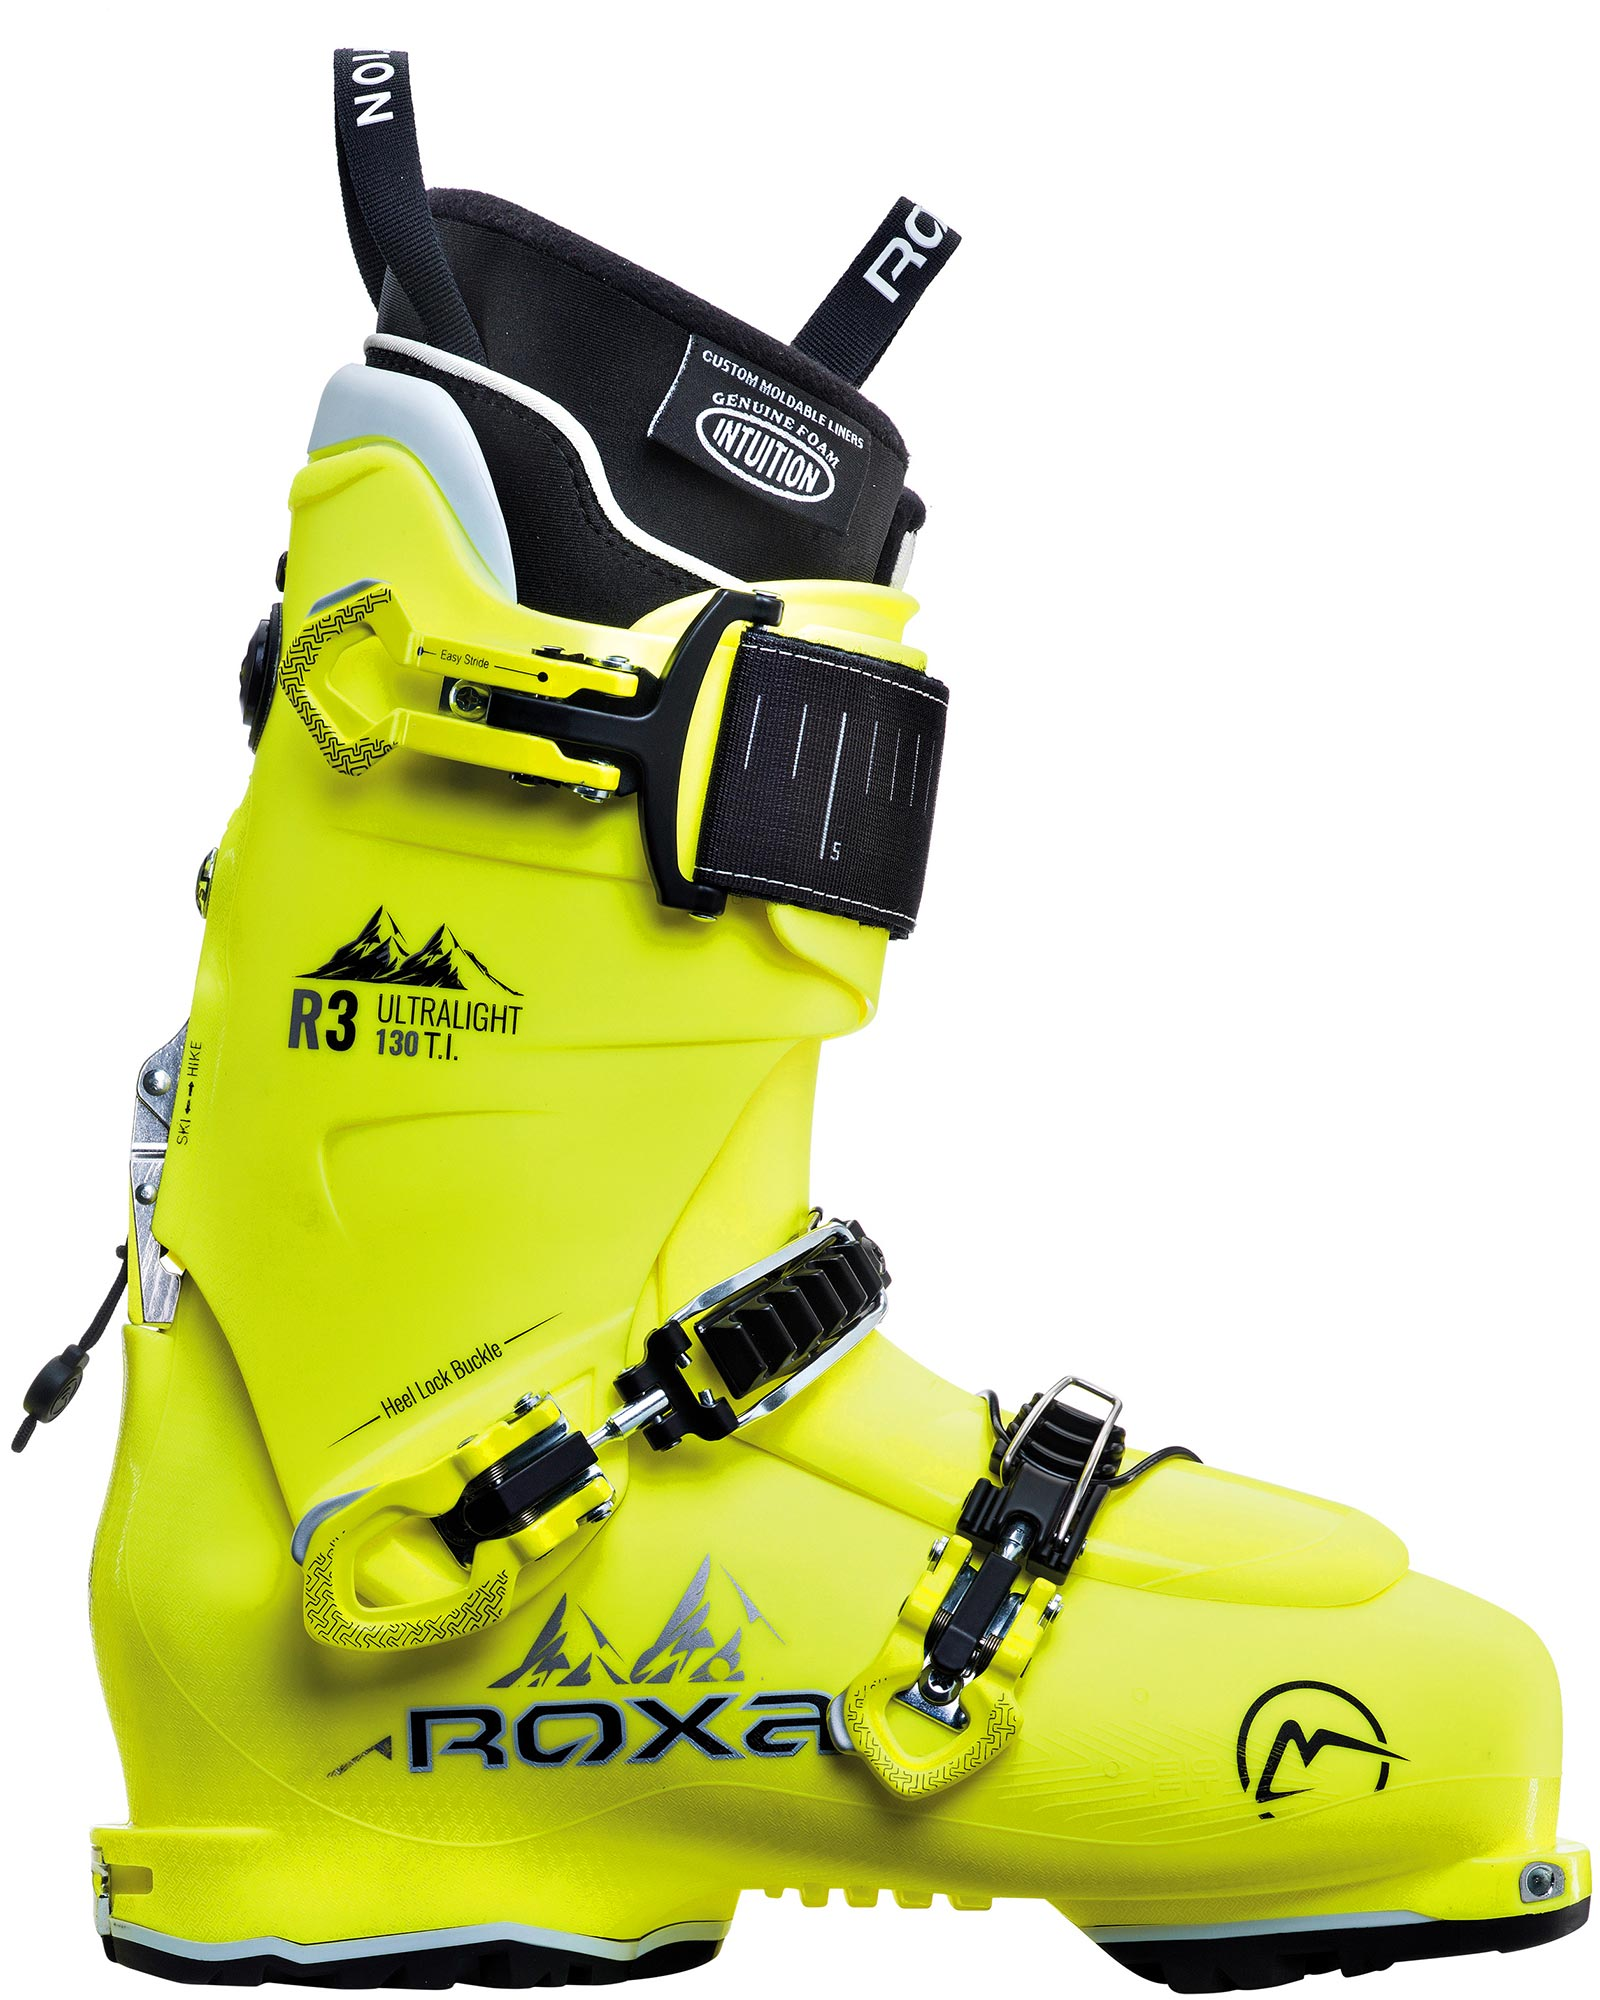 Roxa Men's R3 130 TI I.R. Tongue GW Backcountry Ski Boots 2020 / 2021 0